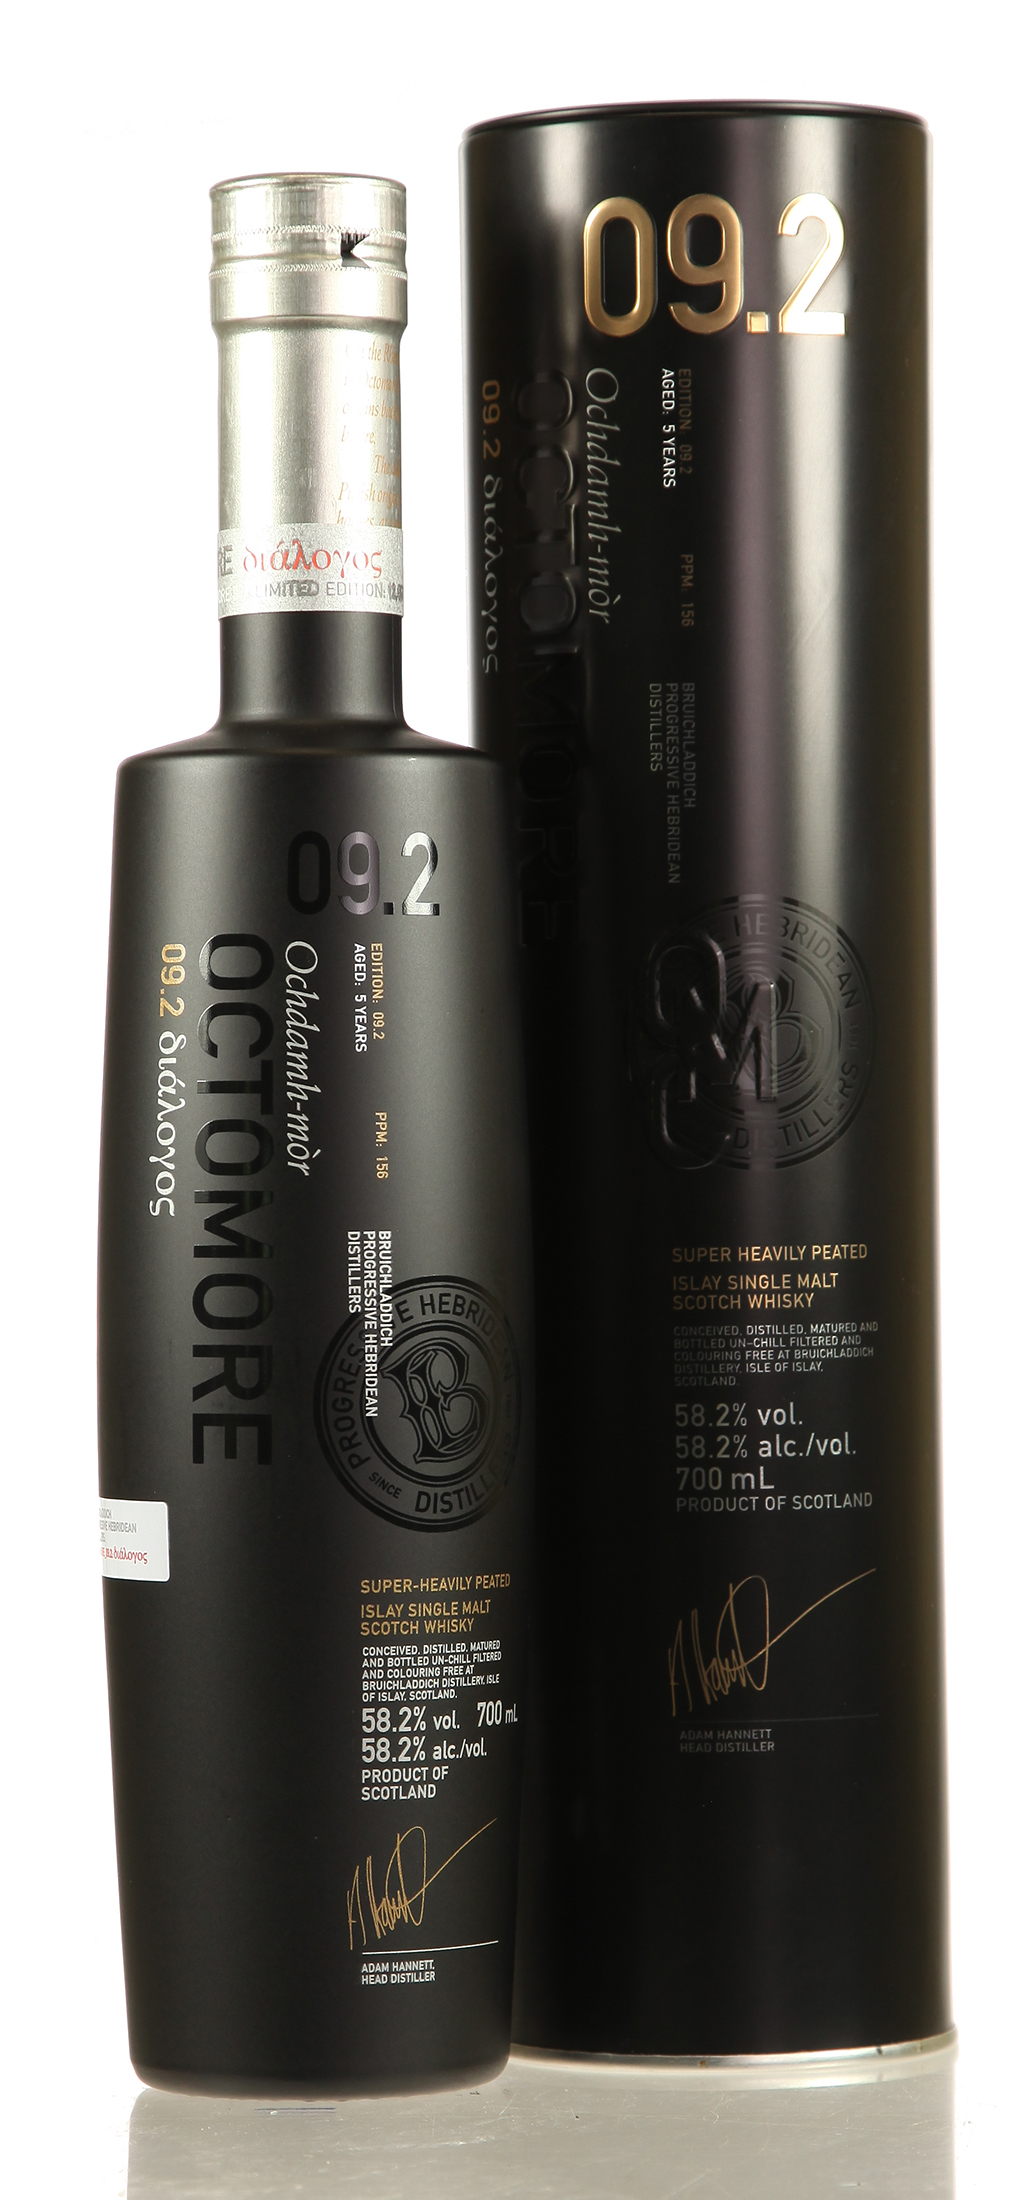 Octomore 09.2